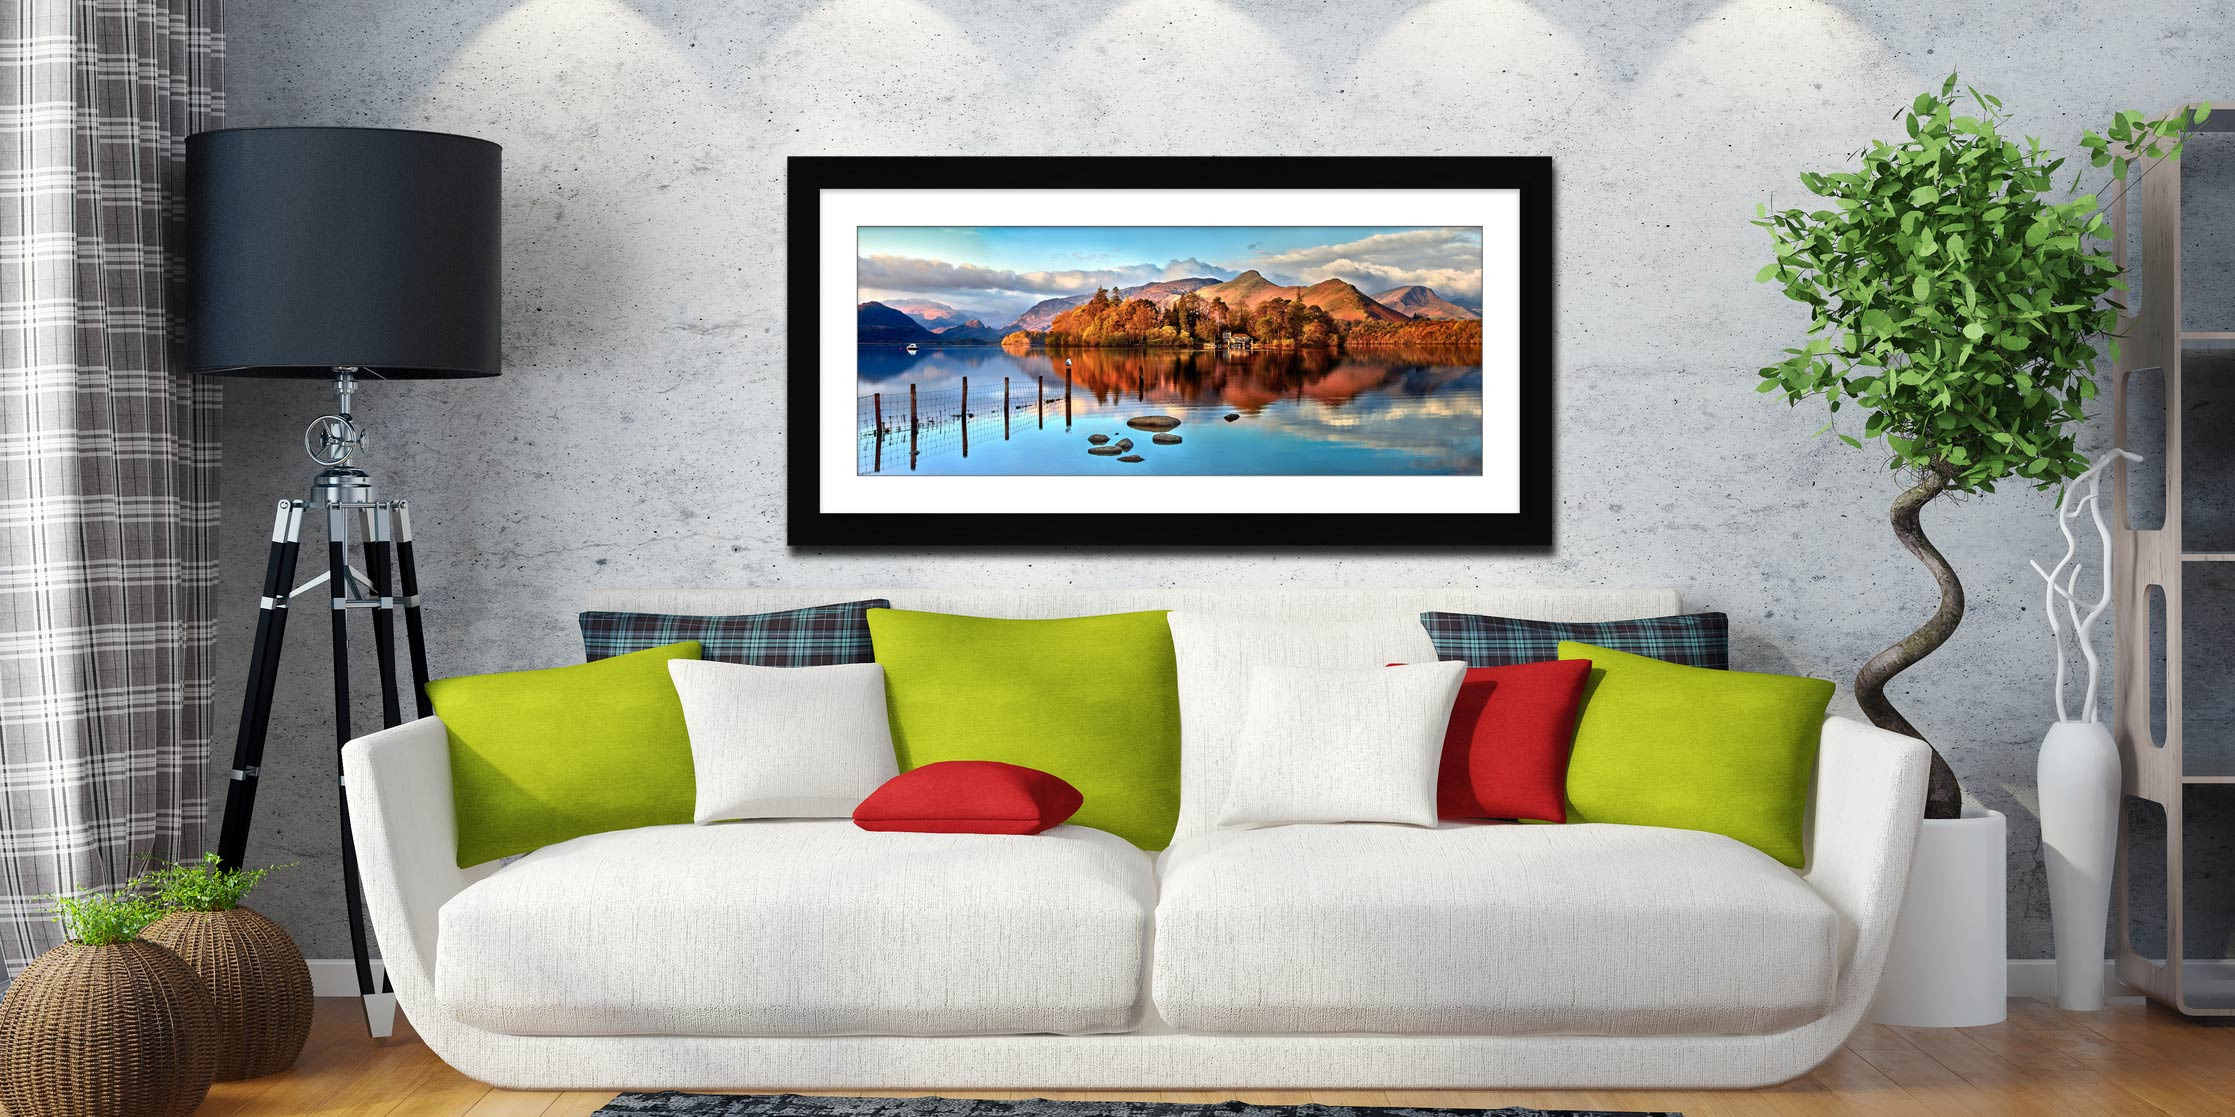 Derwent Water Panorama - Framed Print with Mount on Wall